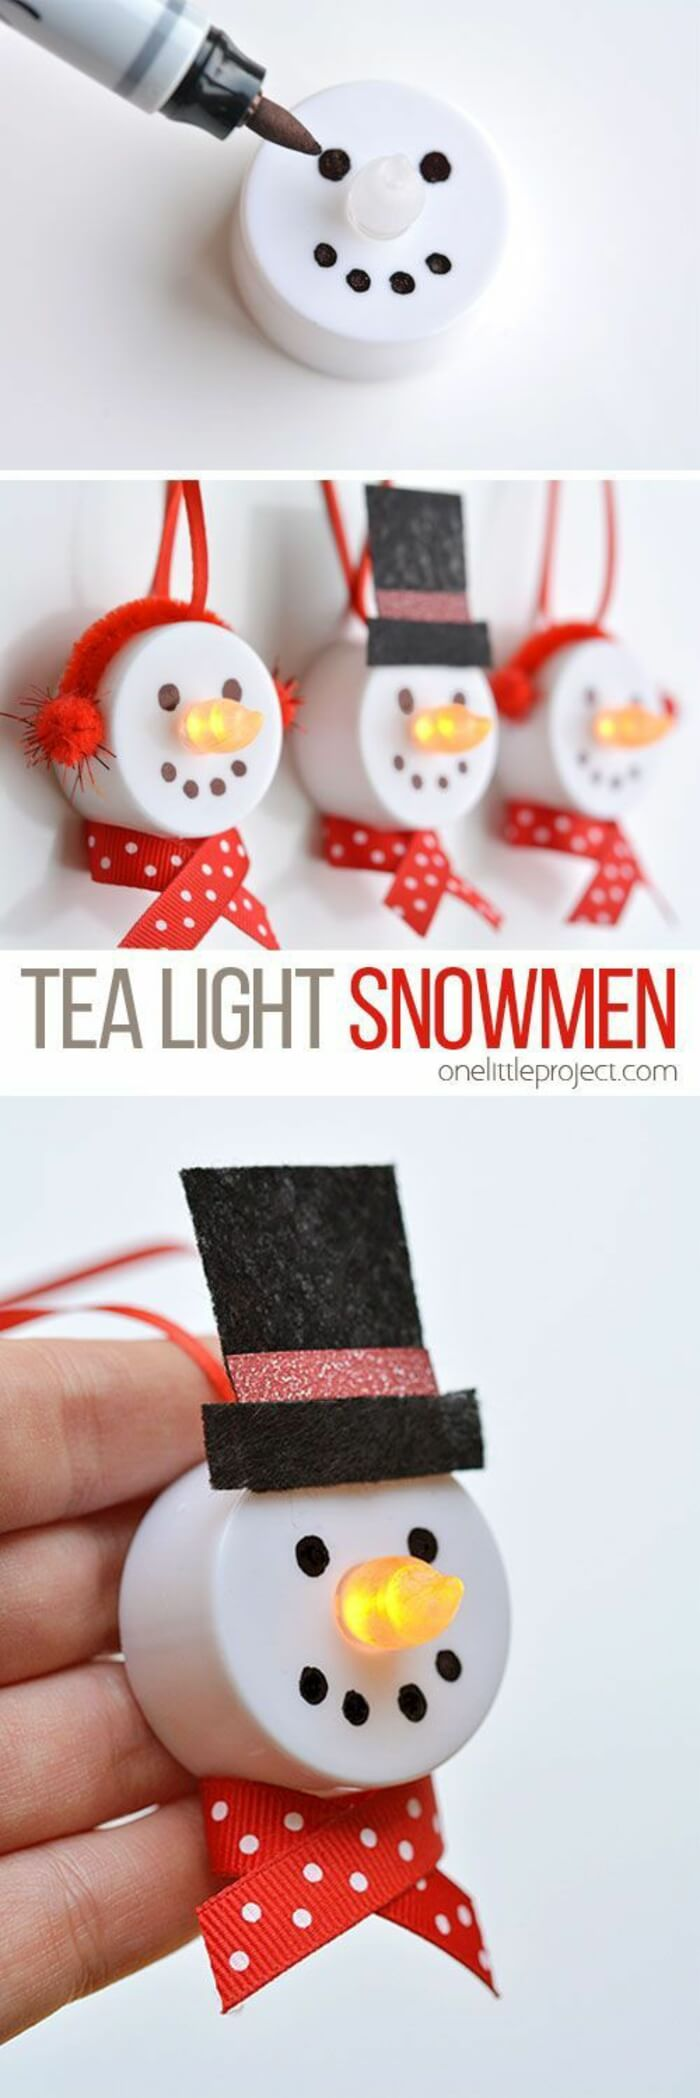 Frosty the Battery Powered Tea Light Snowman